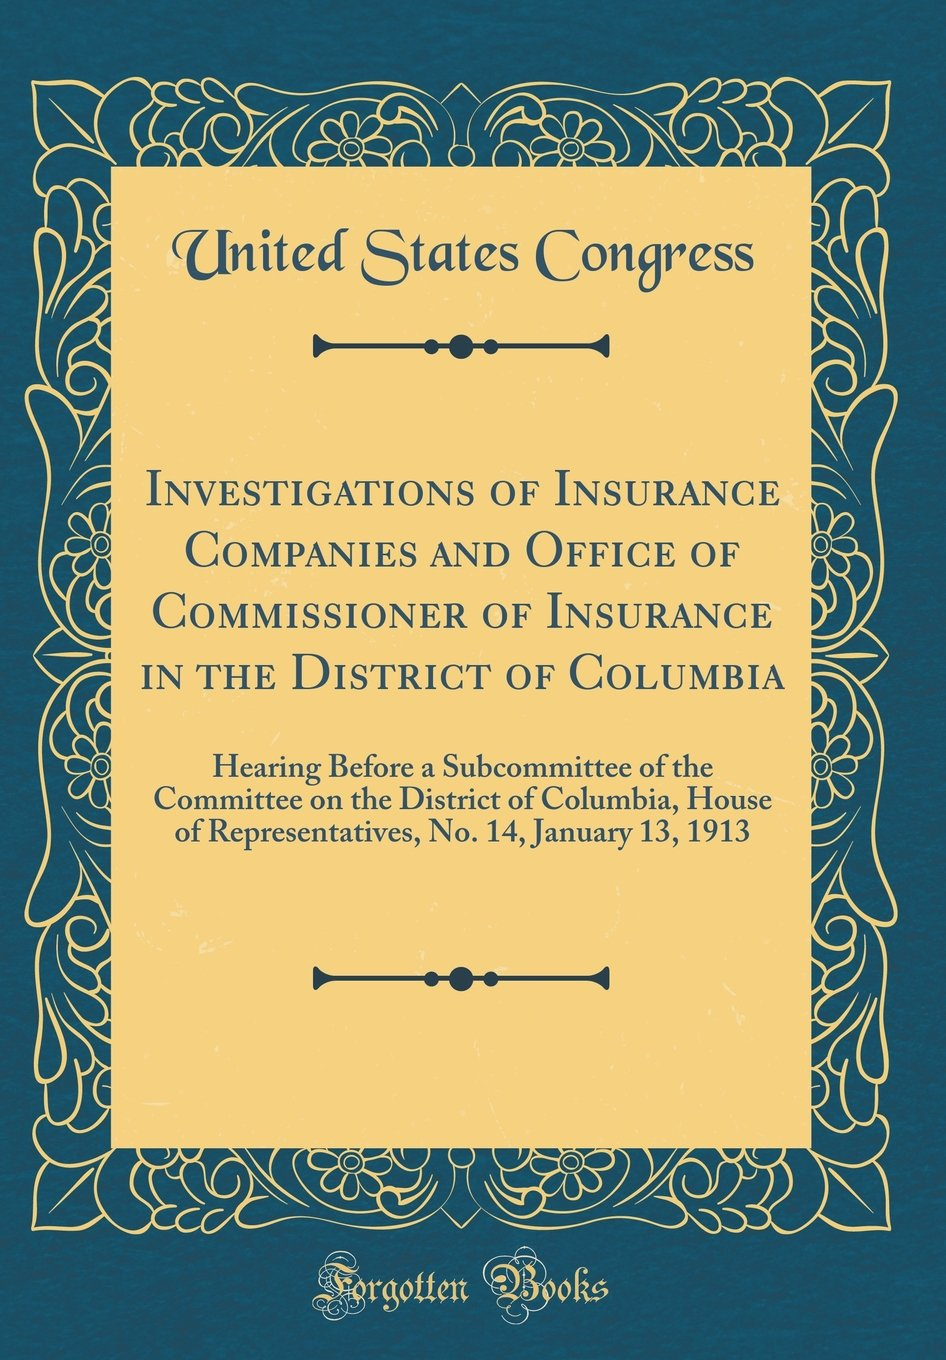 Download Investigations of Insurance Companies and Office of Commissioner of Insurance in the District of Columbia: Hearing Before a Subcommittee of the ... No. 14, January 13, 1913 (Classic Reprint) pdf epub